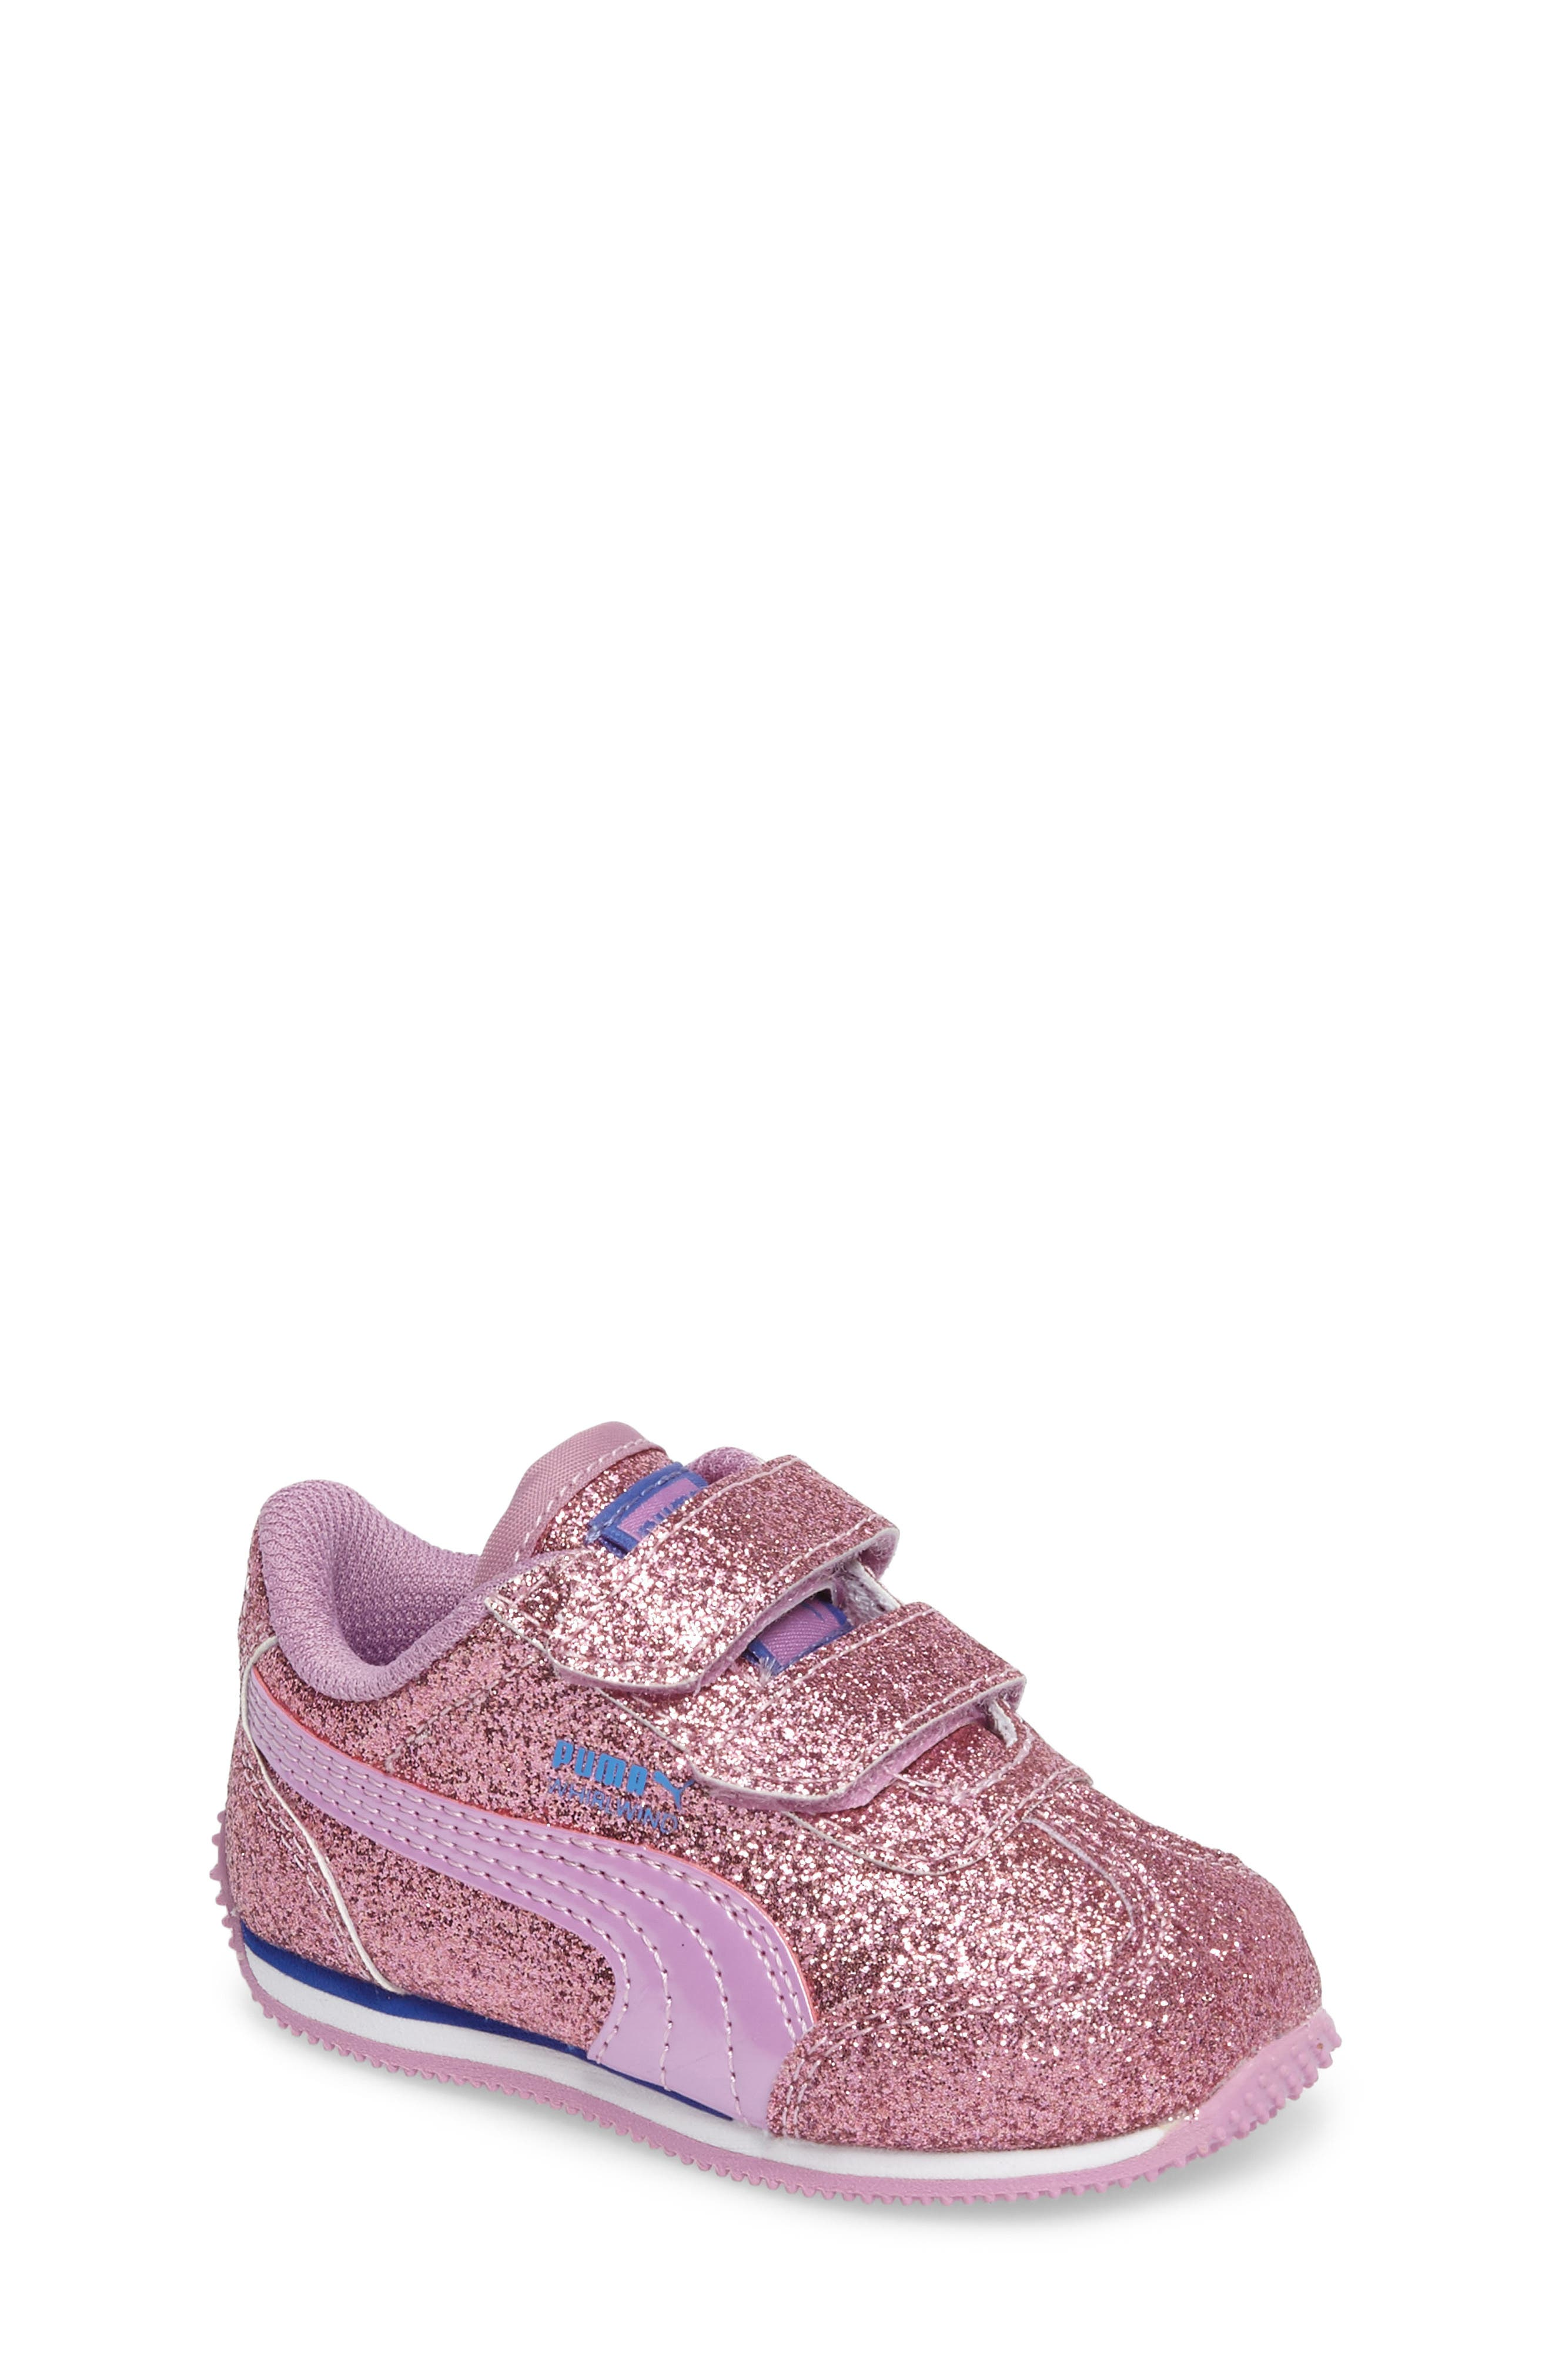 Puma Whirlwind Glitz Sneaker (Baby, Walker, Toddler, Little Kid & Big Kid)